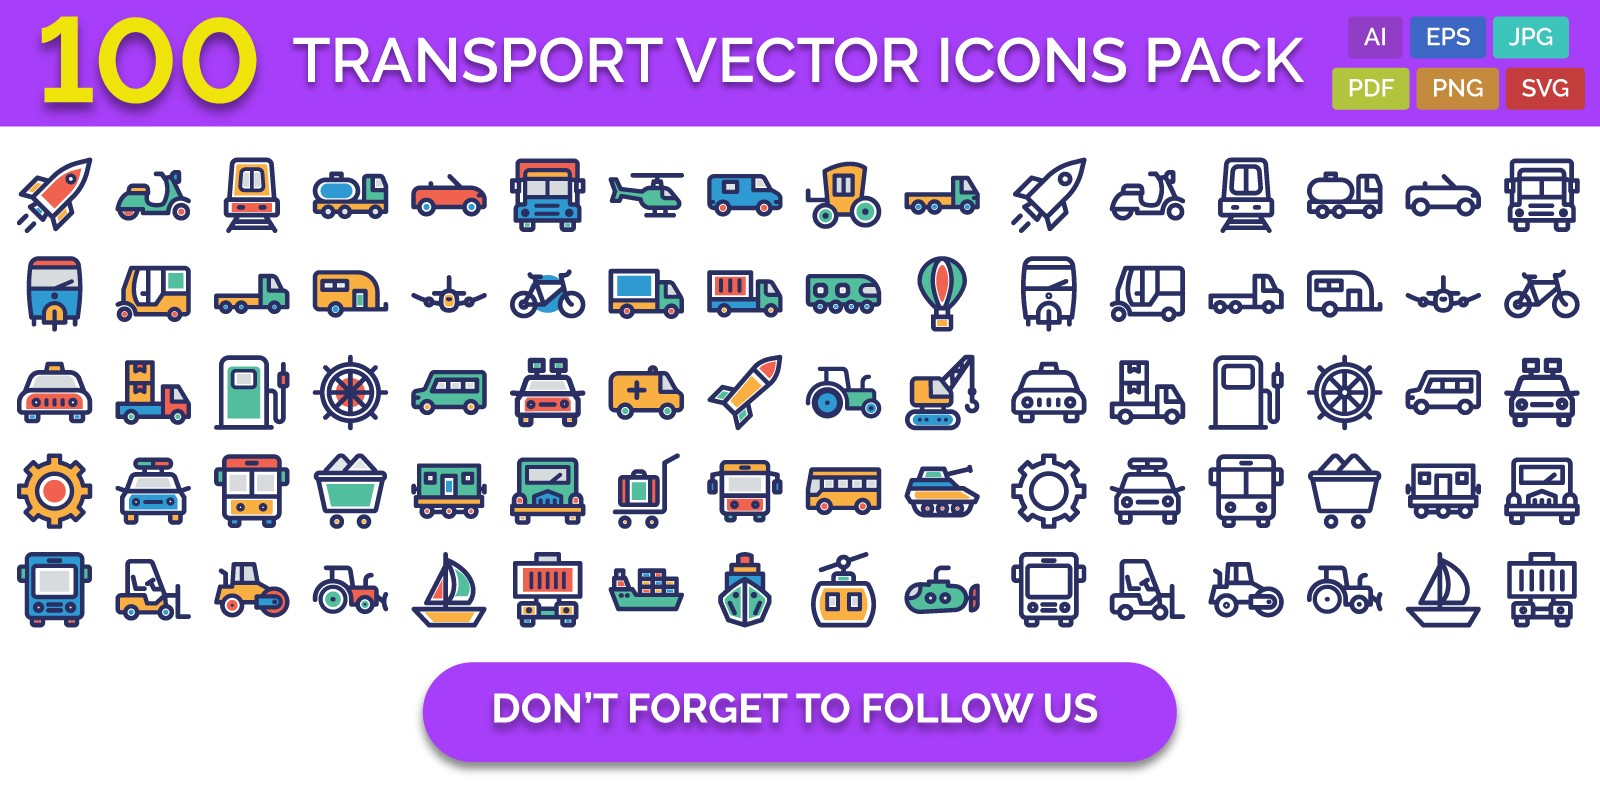 100 Transport Vector Icons Pack